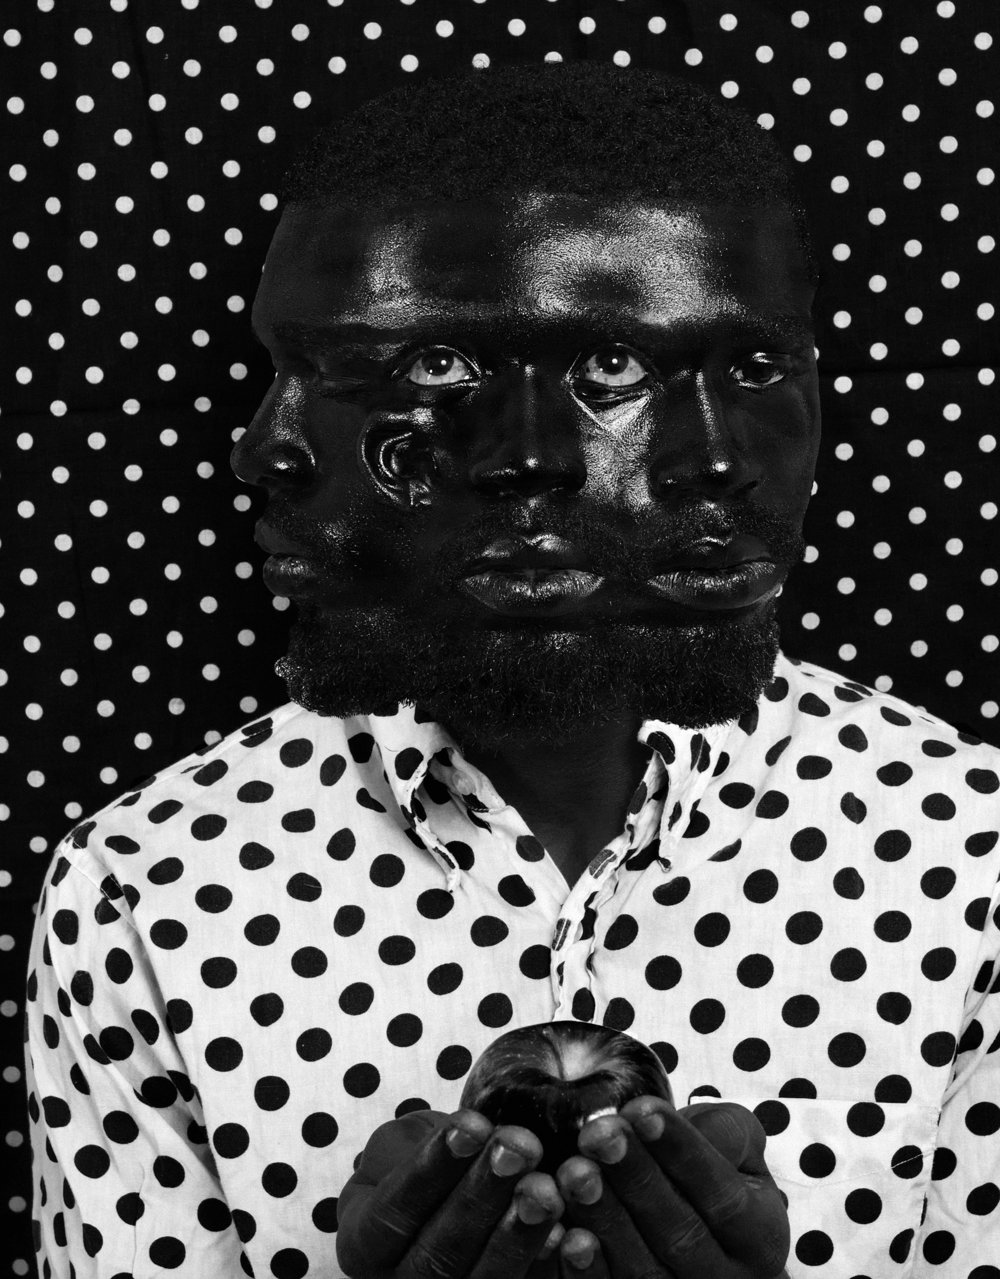 Ivan Forde,  The Fruit , 2012  Inkjet print, 17 x 22 in, edition of 11   Inquire